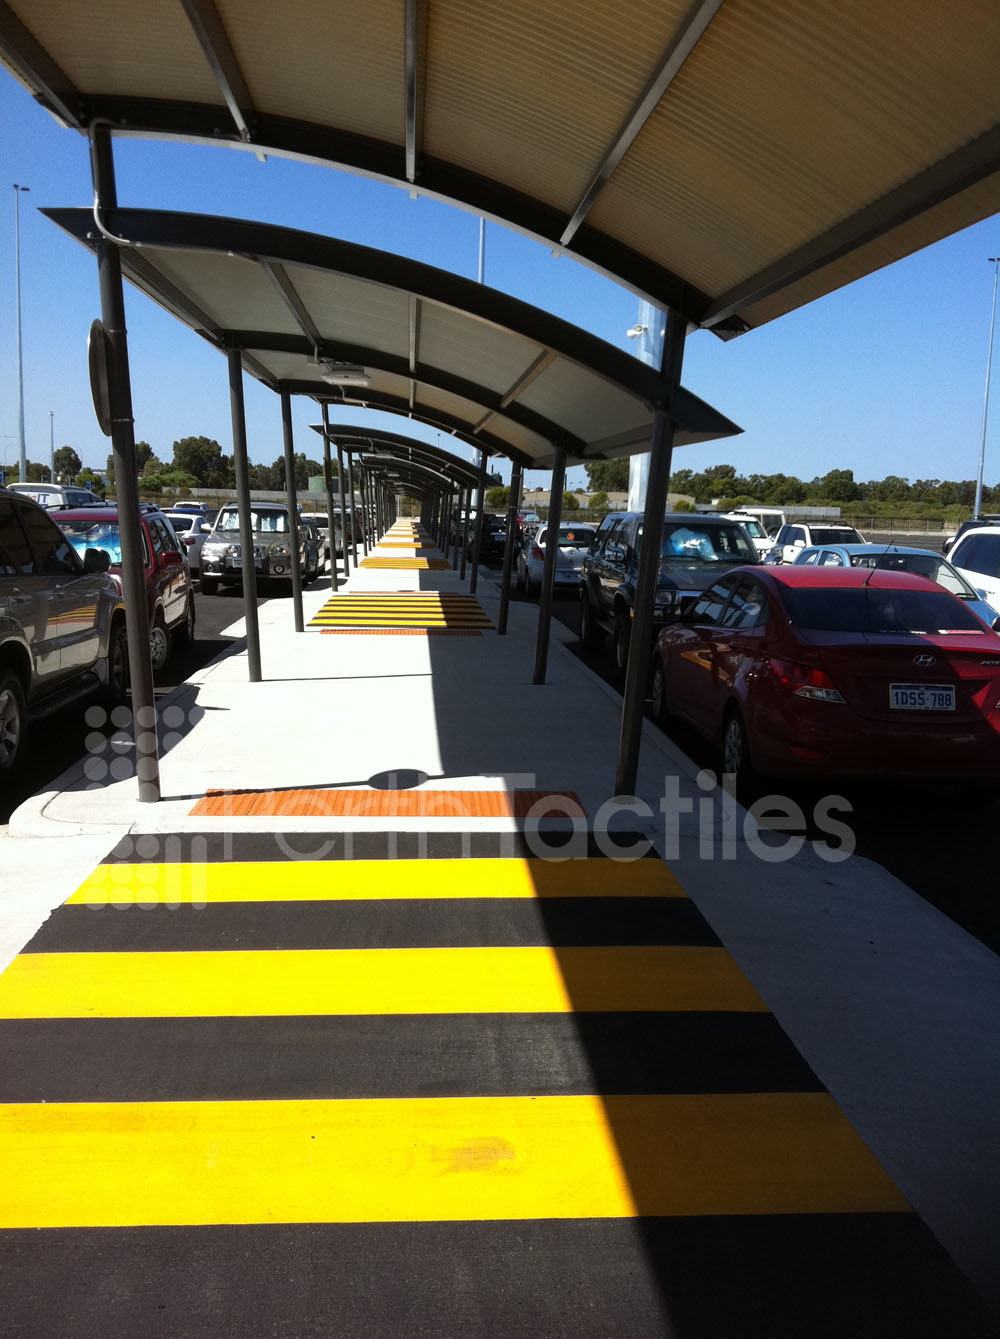 Tactiles Perth Int Airport